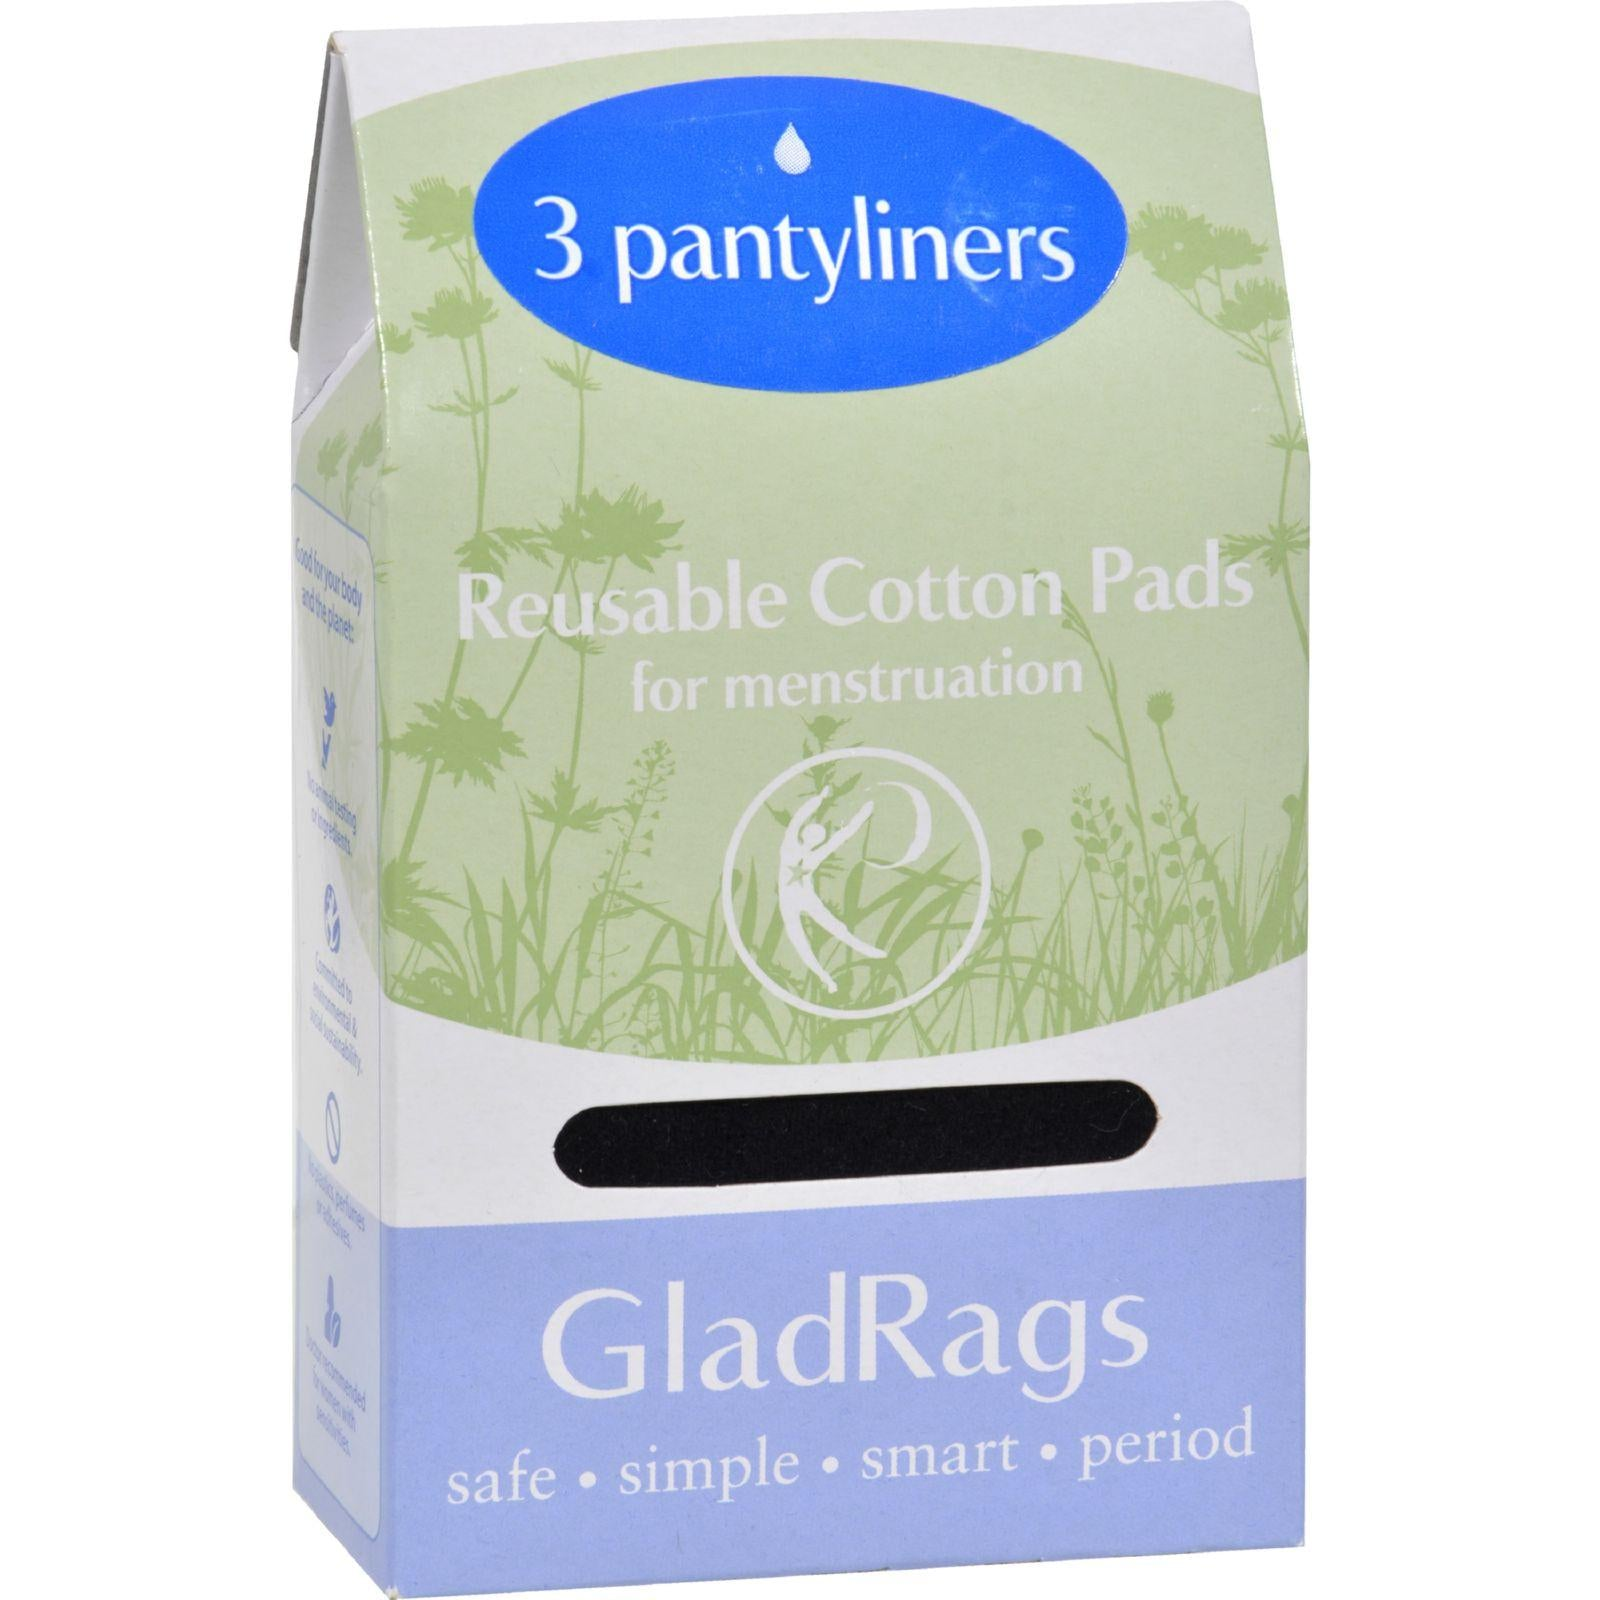 Gladrags Color Cotton Pantyliner - 3 Pack (Reusable Cloth Panty Liners)